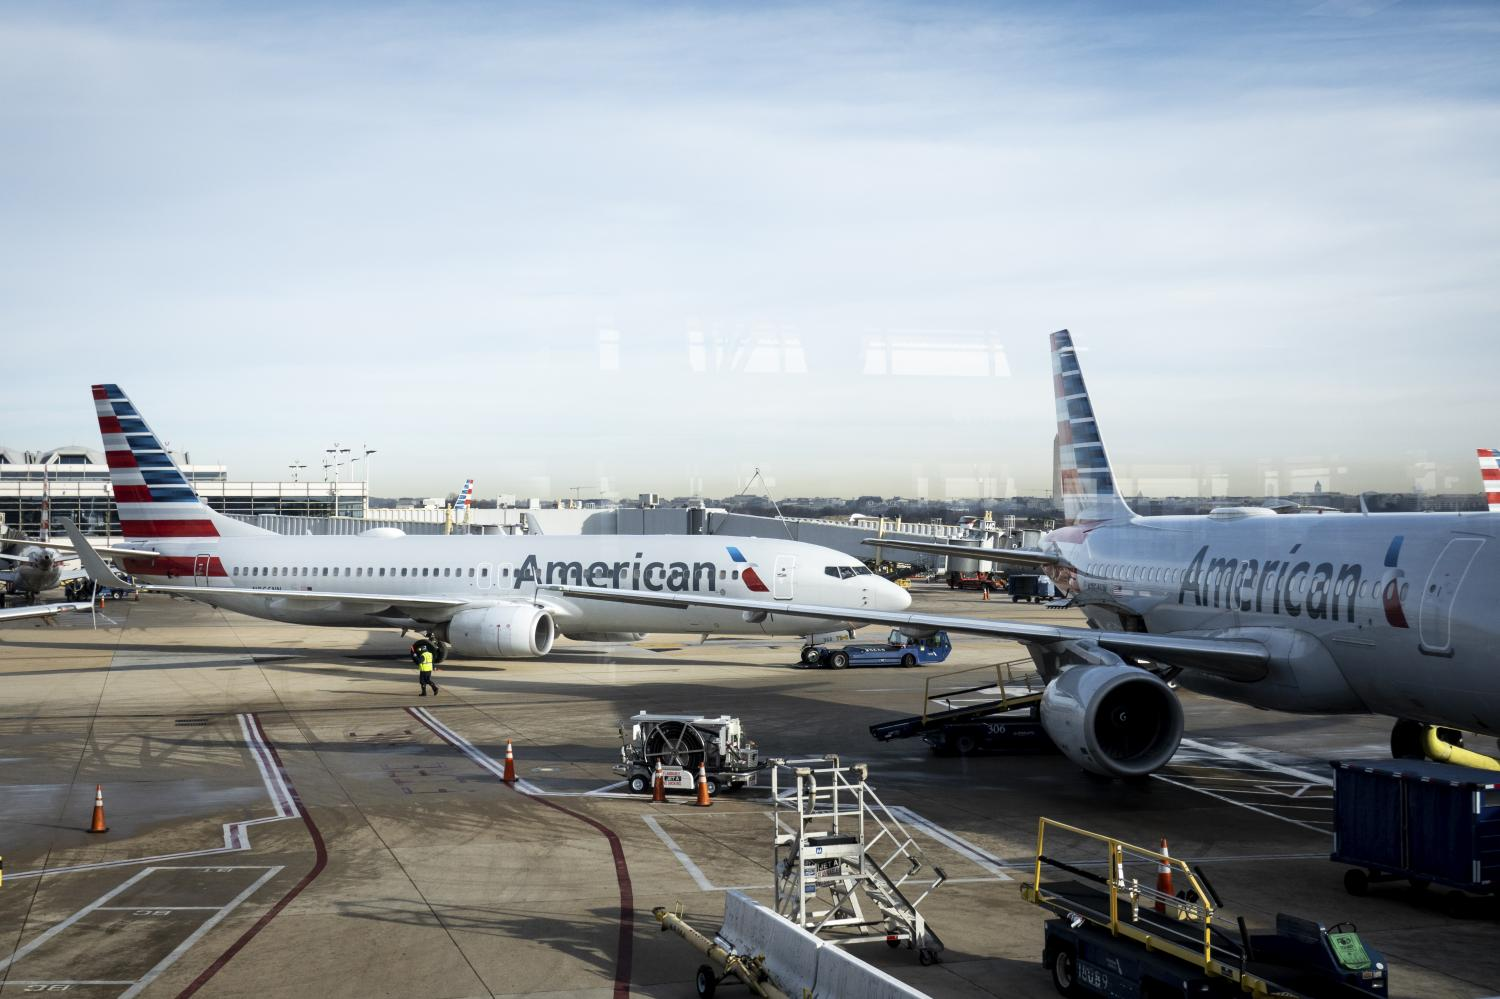 American is planning a big increase in flying this summer, adding scores of new domestic routes and anticipating overall flying capacity of 75% to 80% of pre-pandemic levels.